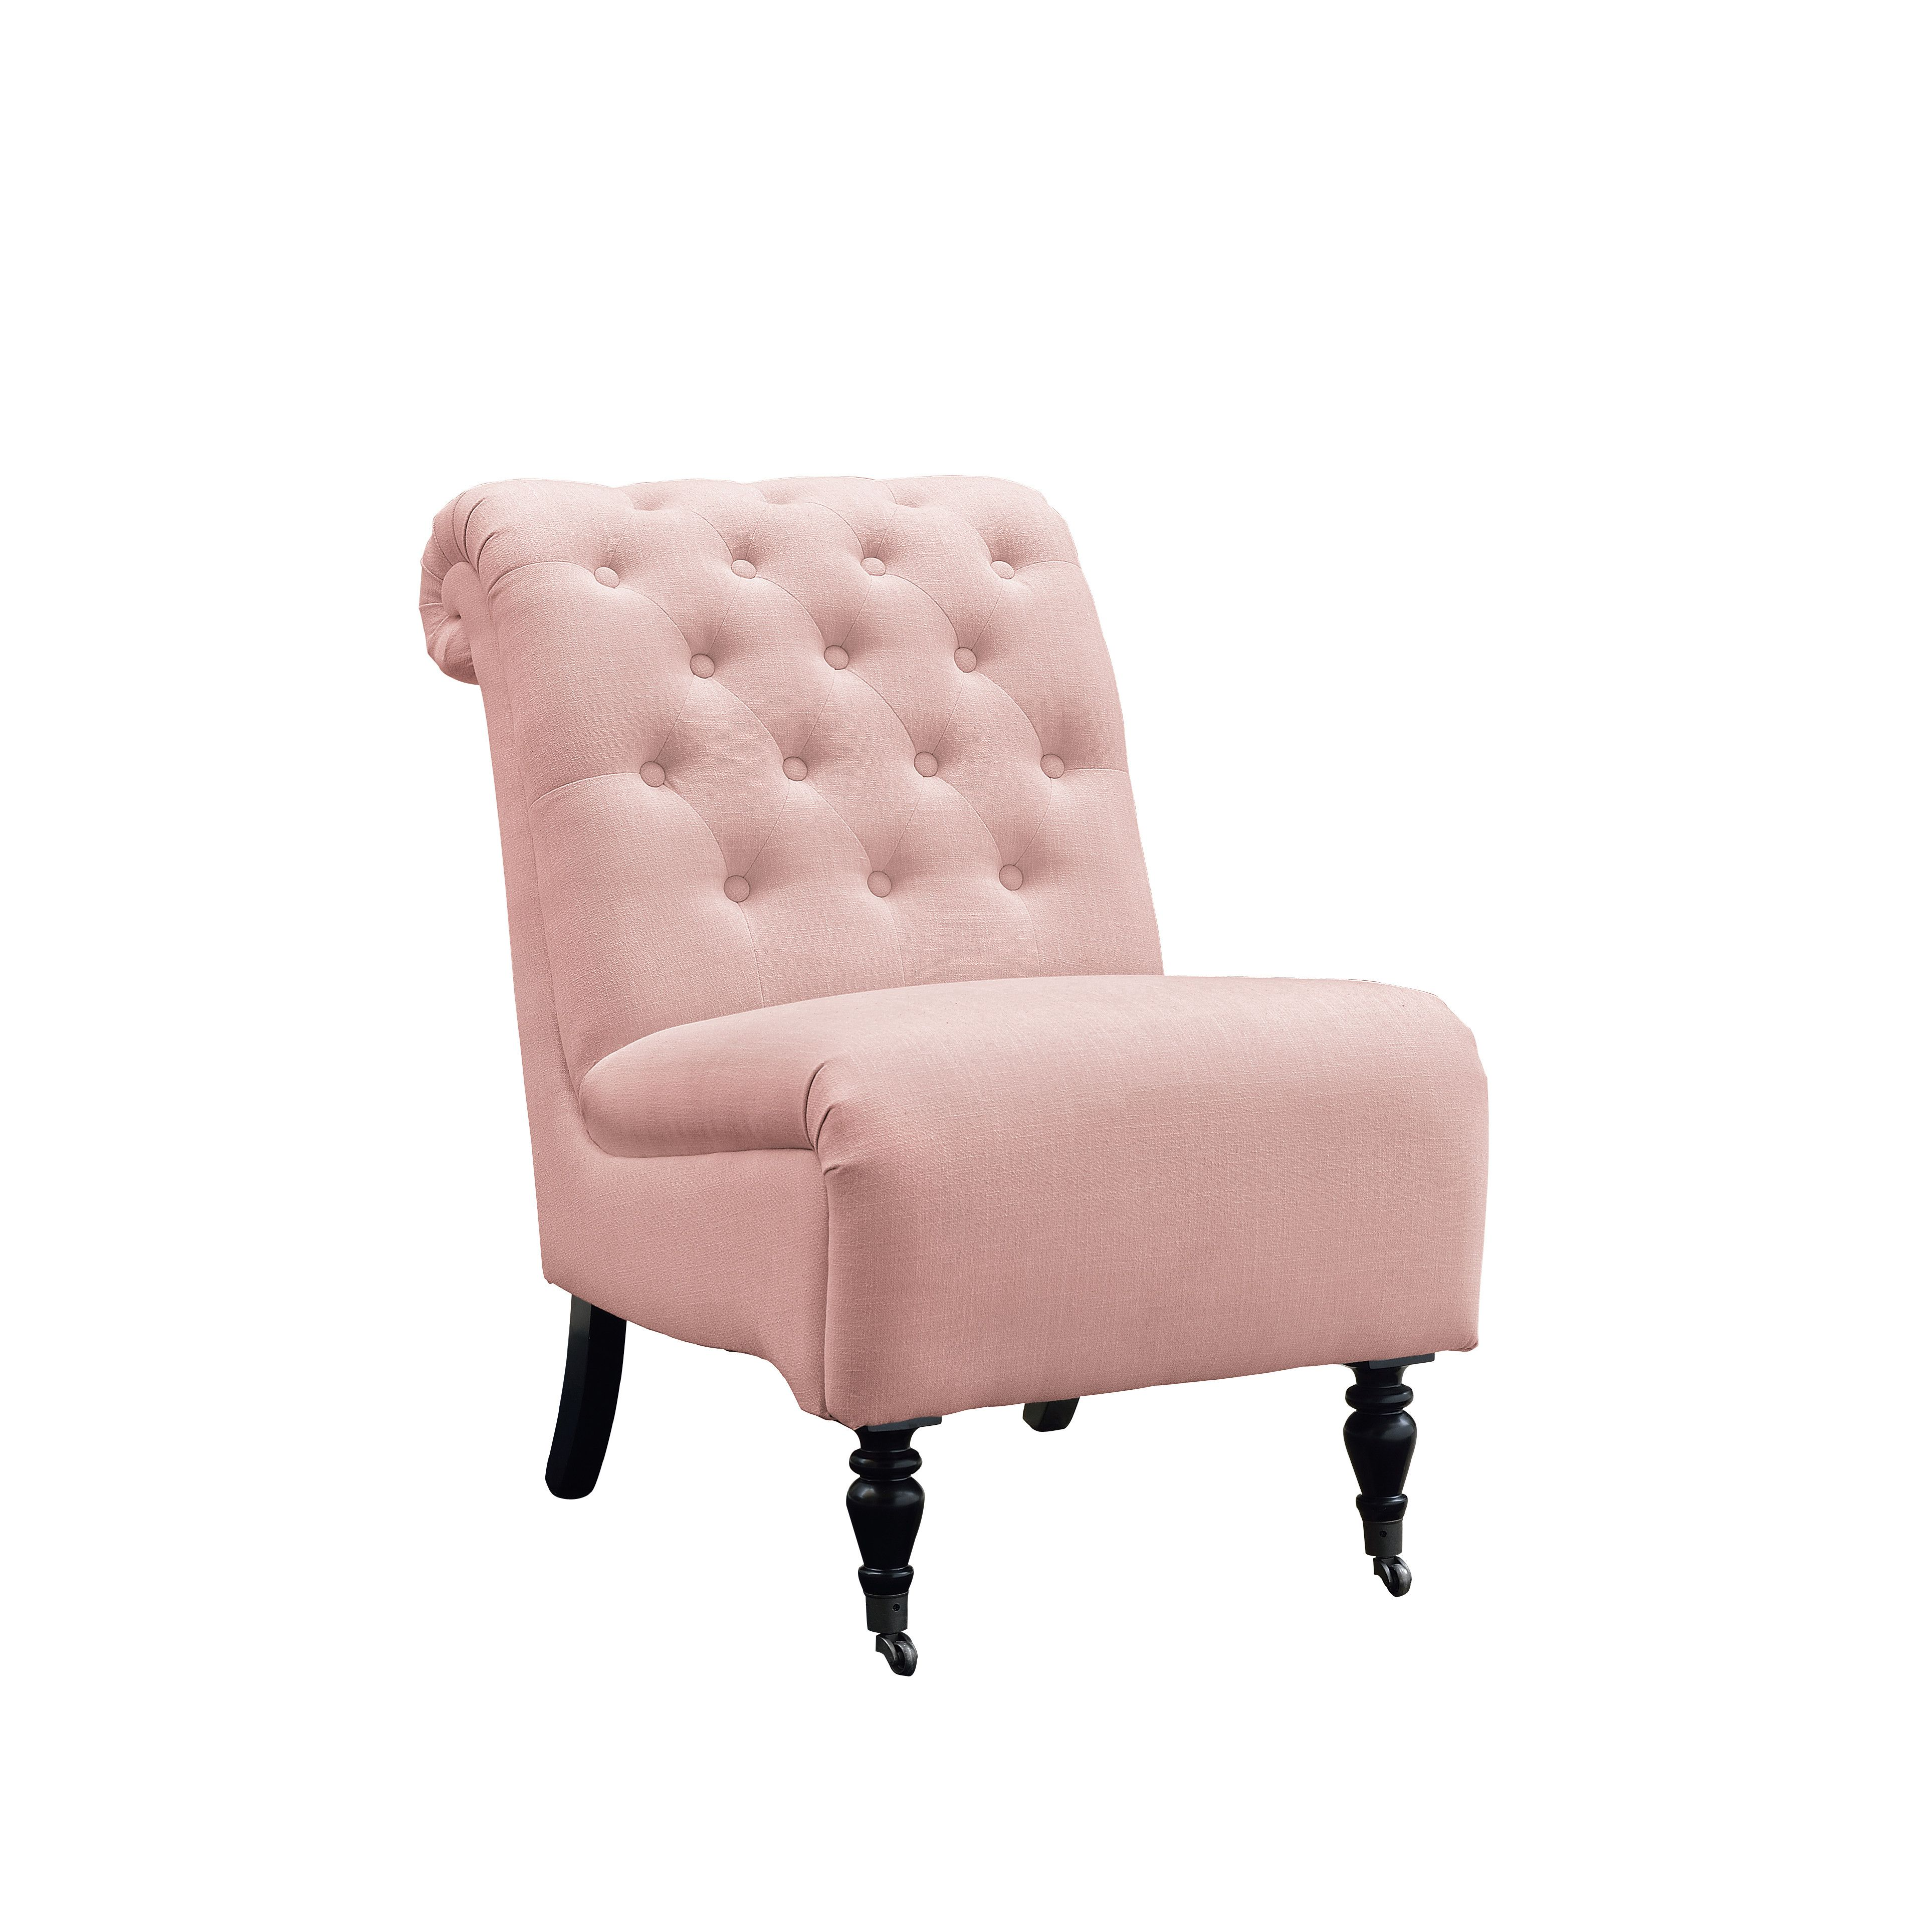 house of hampton cyclamen roll back tufted parson chair | home